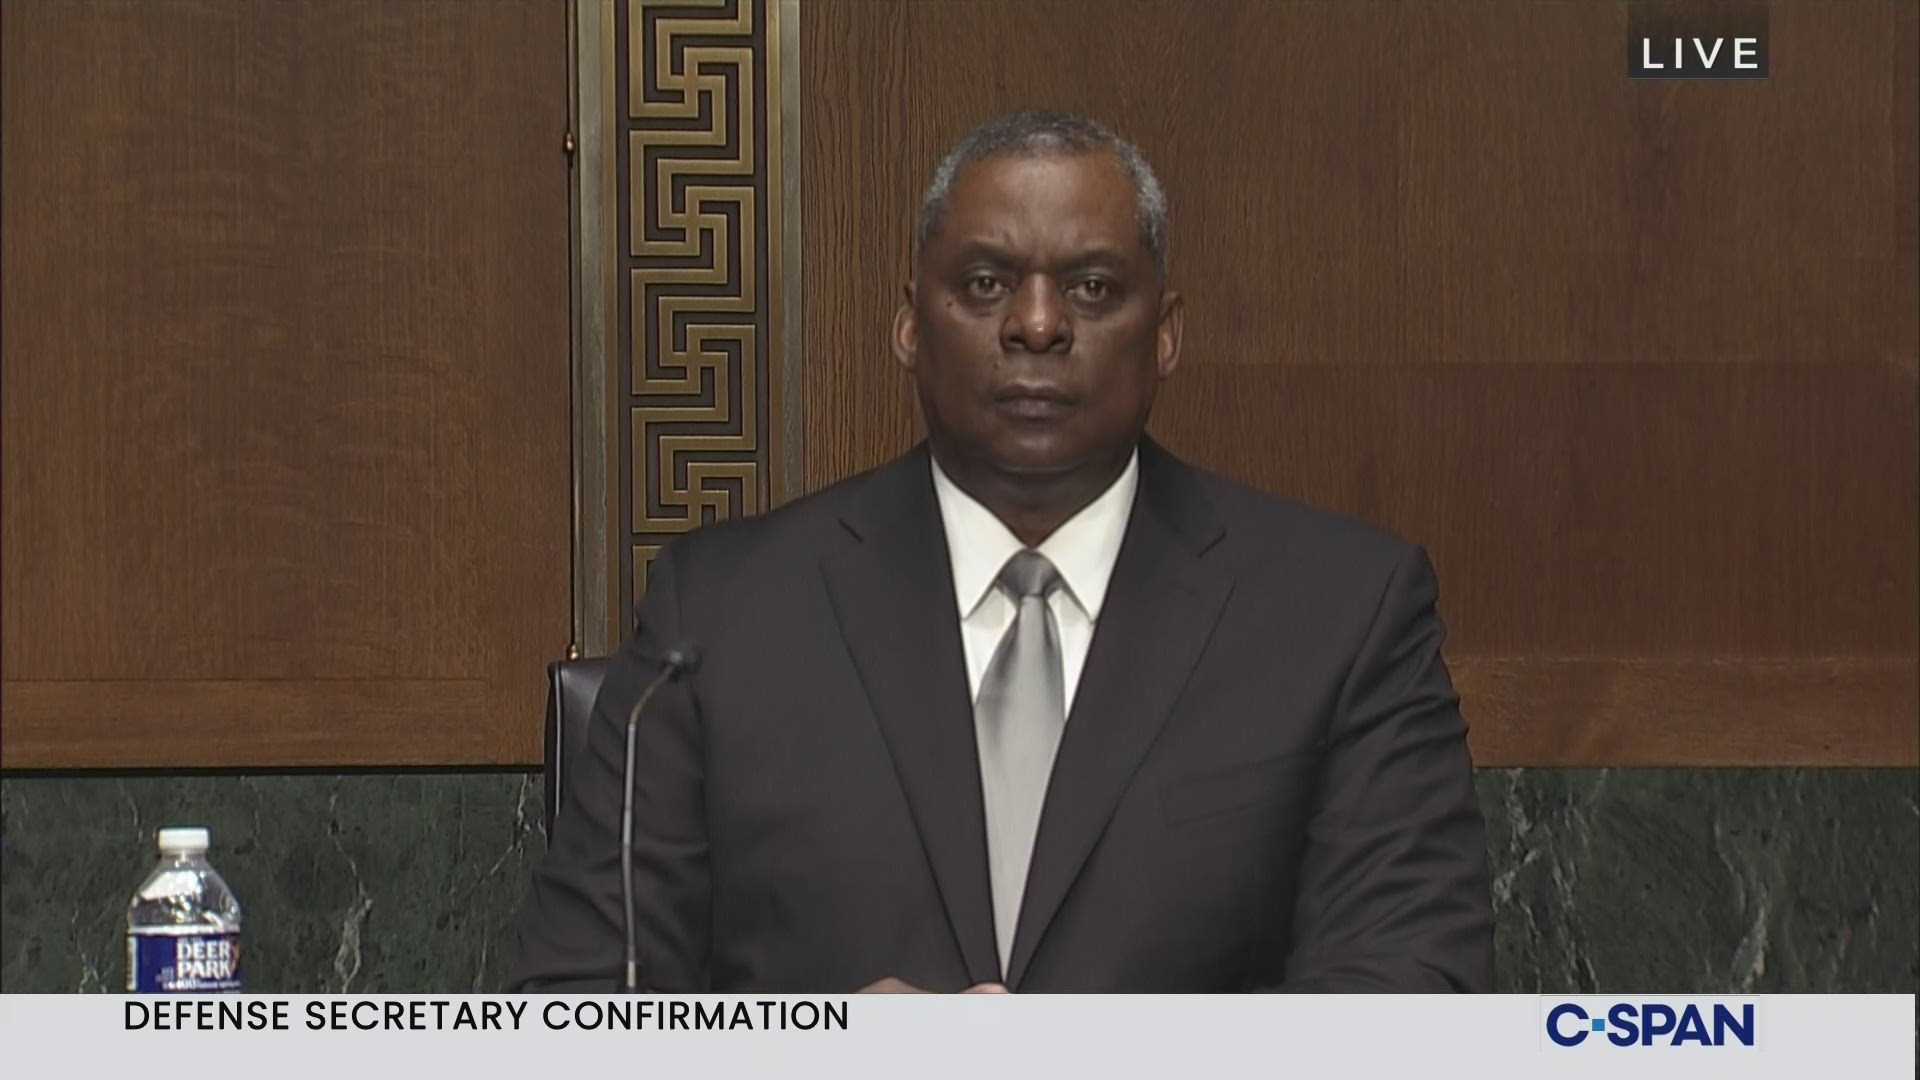 Defense Secretary Confirmation Hearing C Span Org